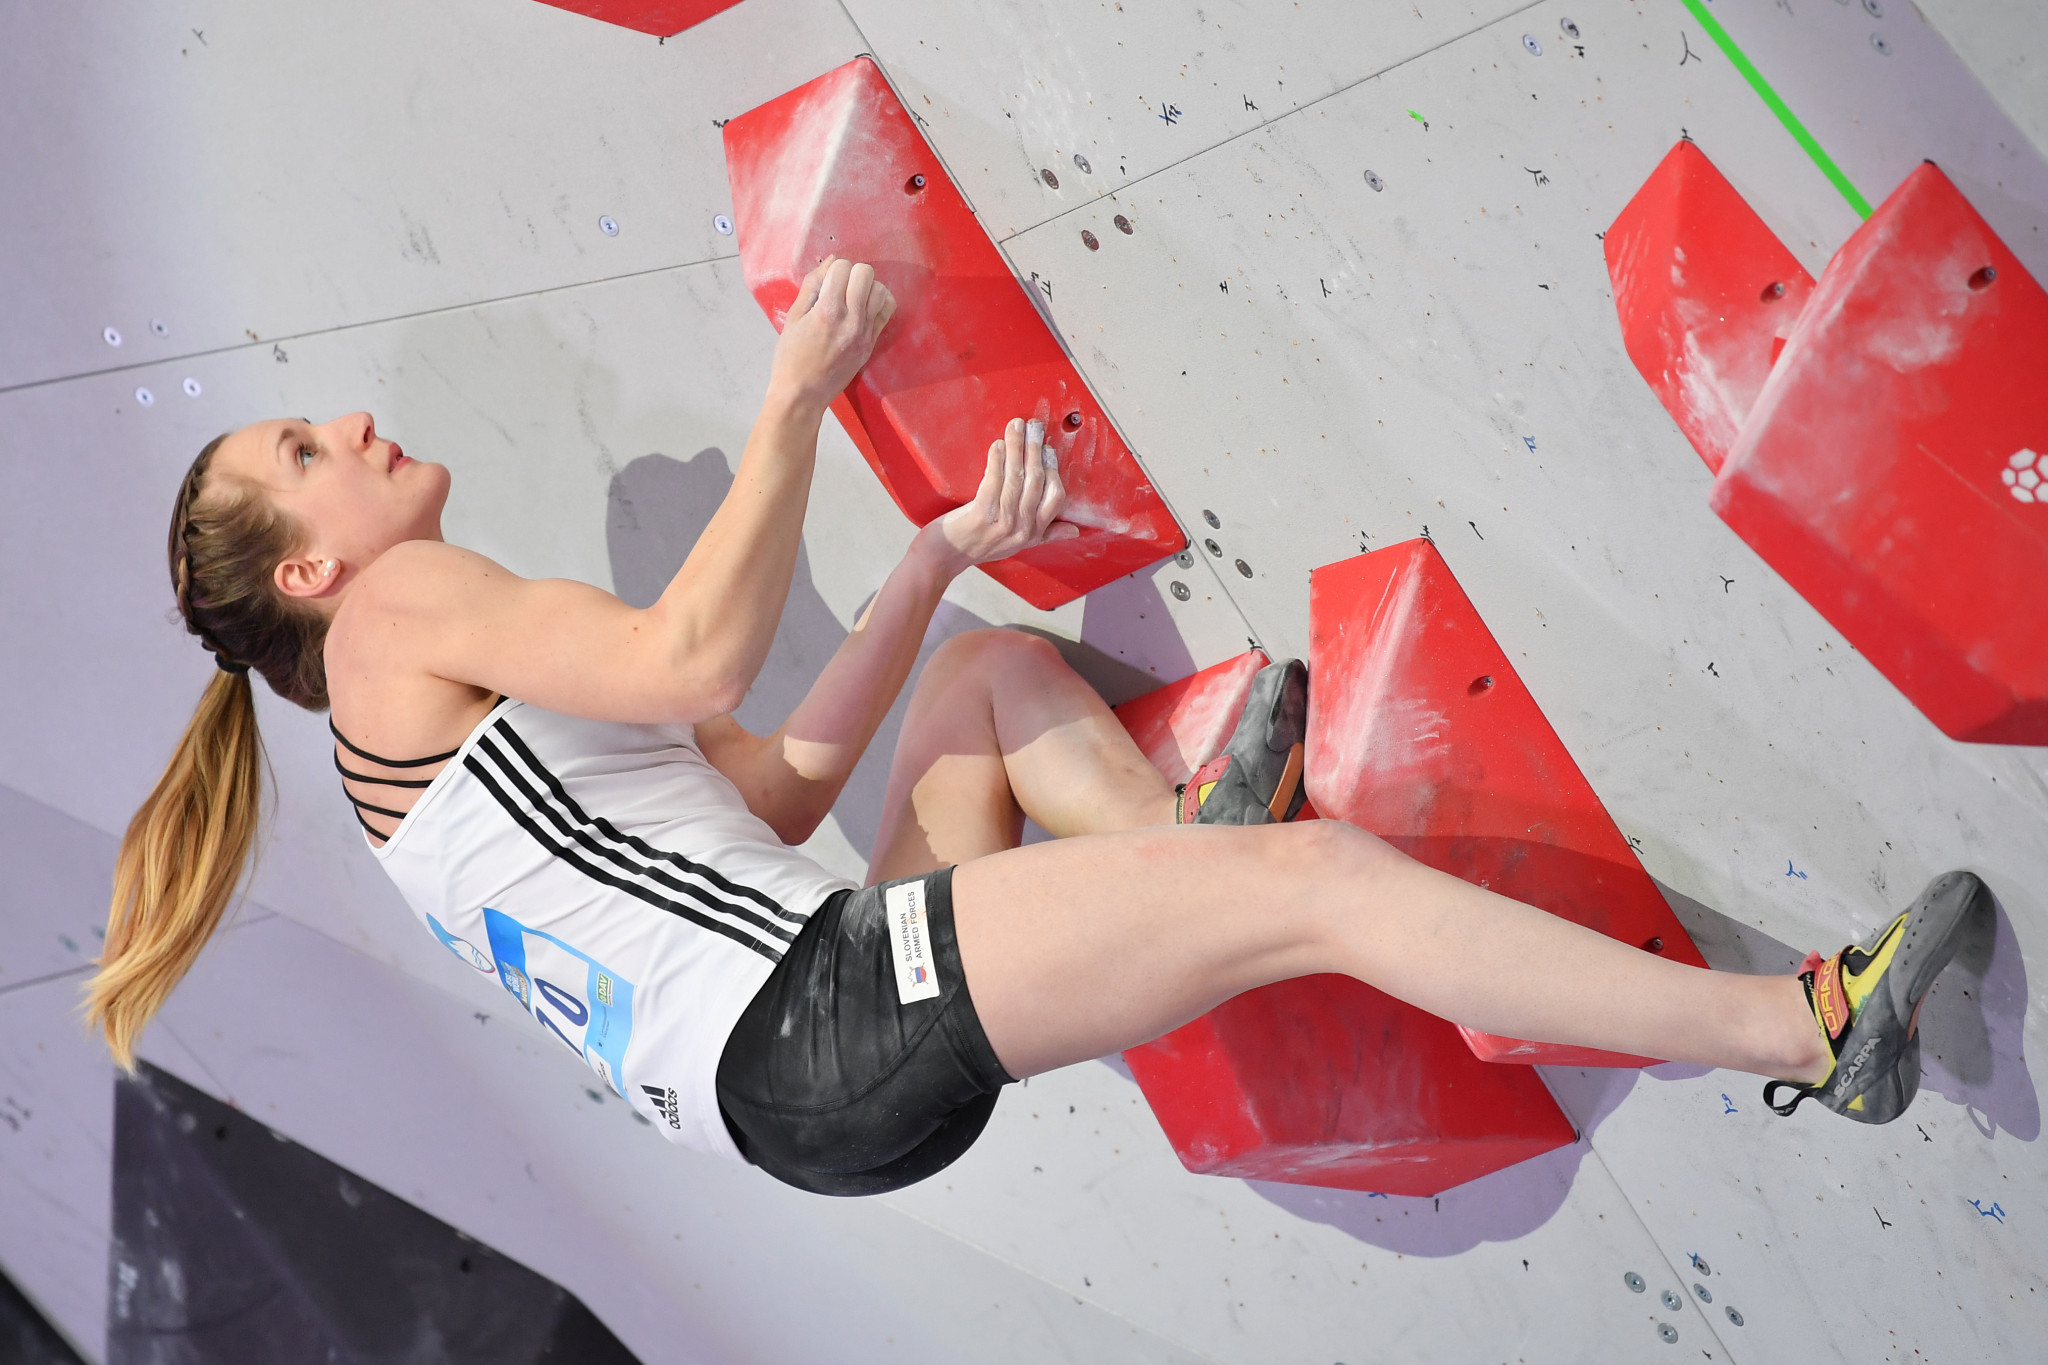 The International Federation of Sport Climbing will be advised by MSM ©Getty Images